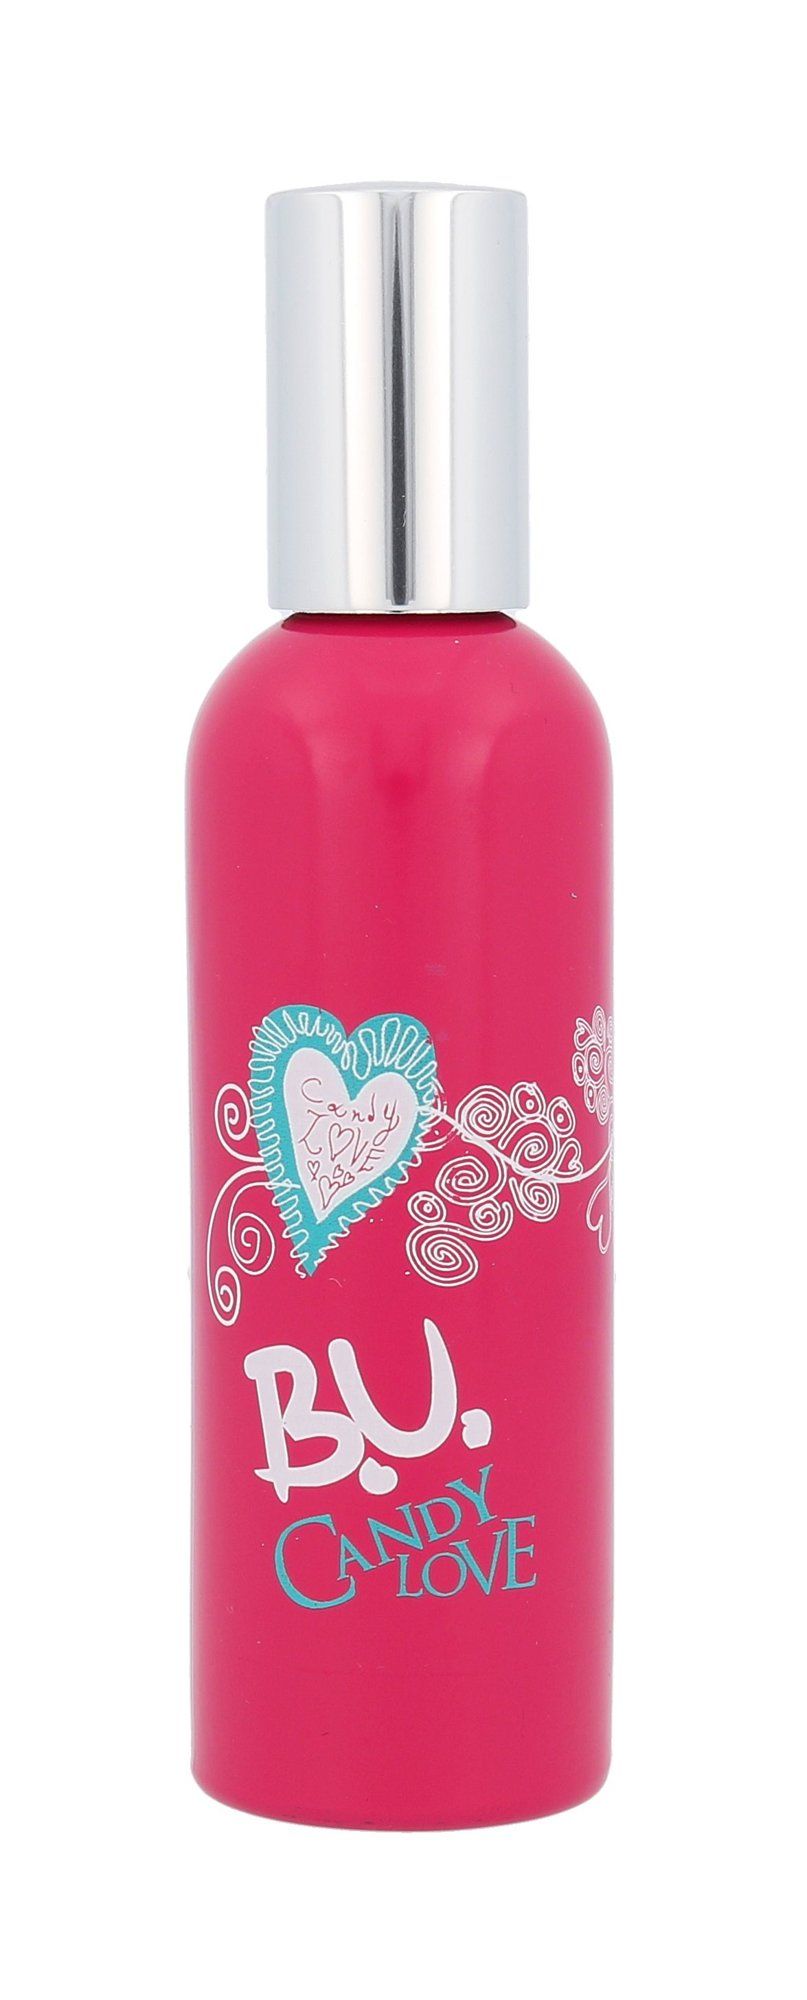 B.U. Candy Love EDT 50ml